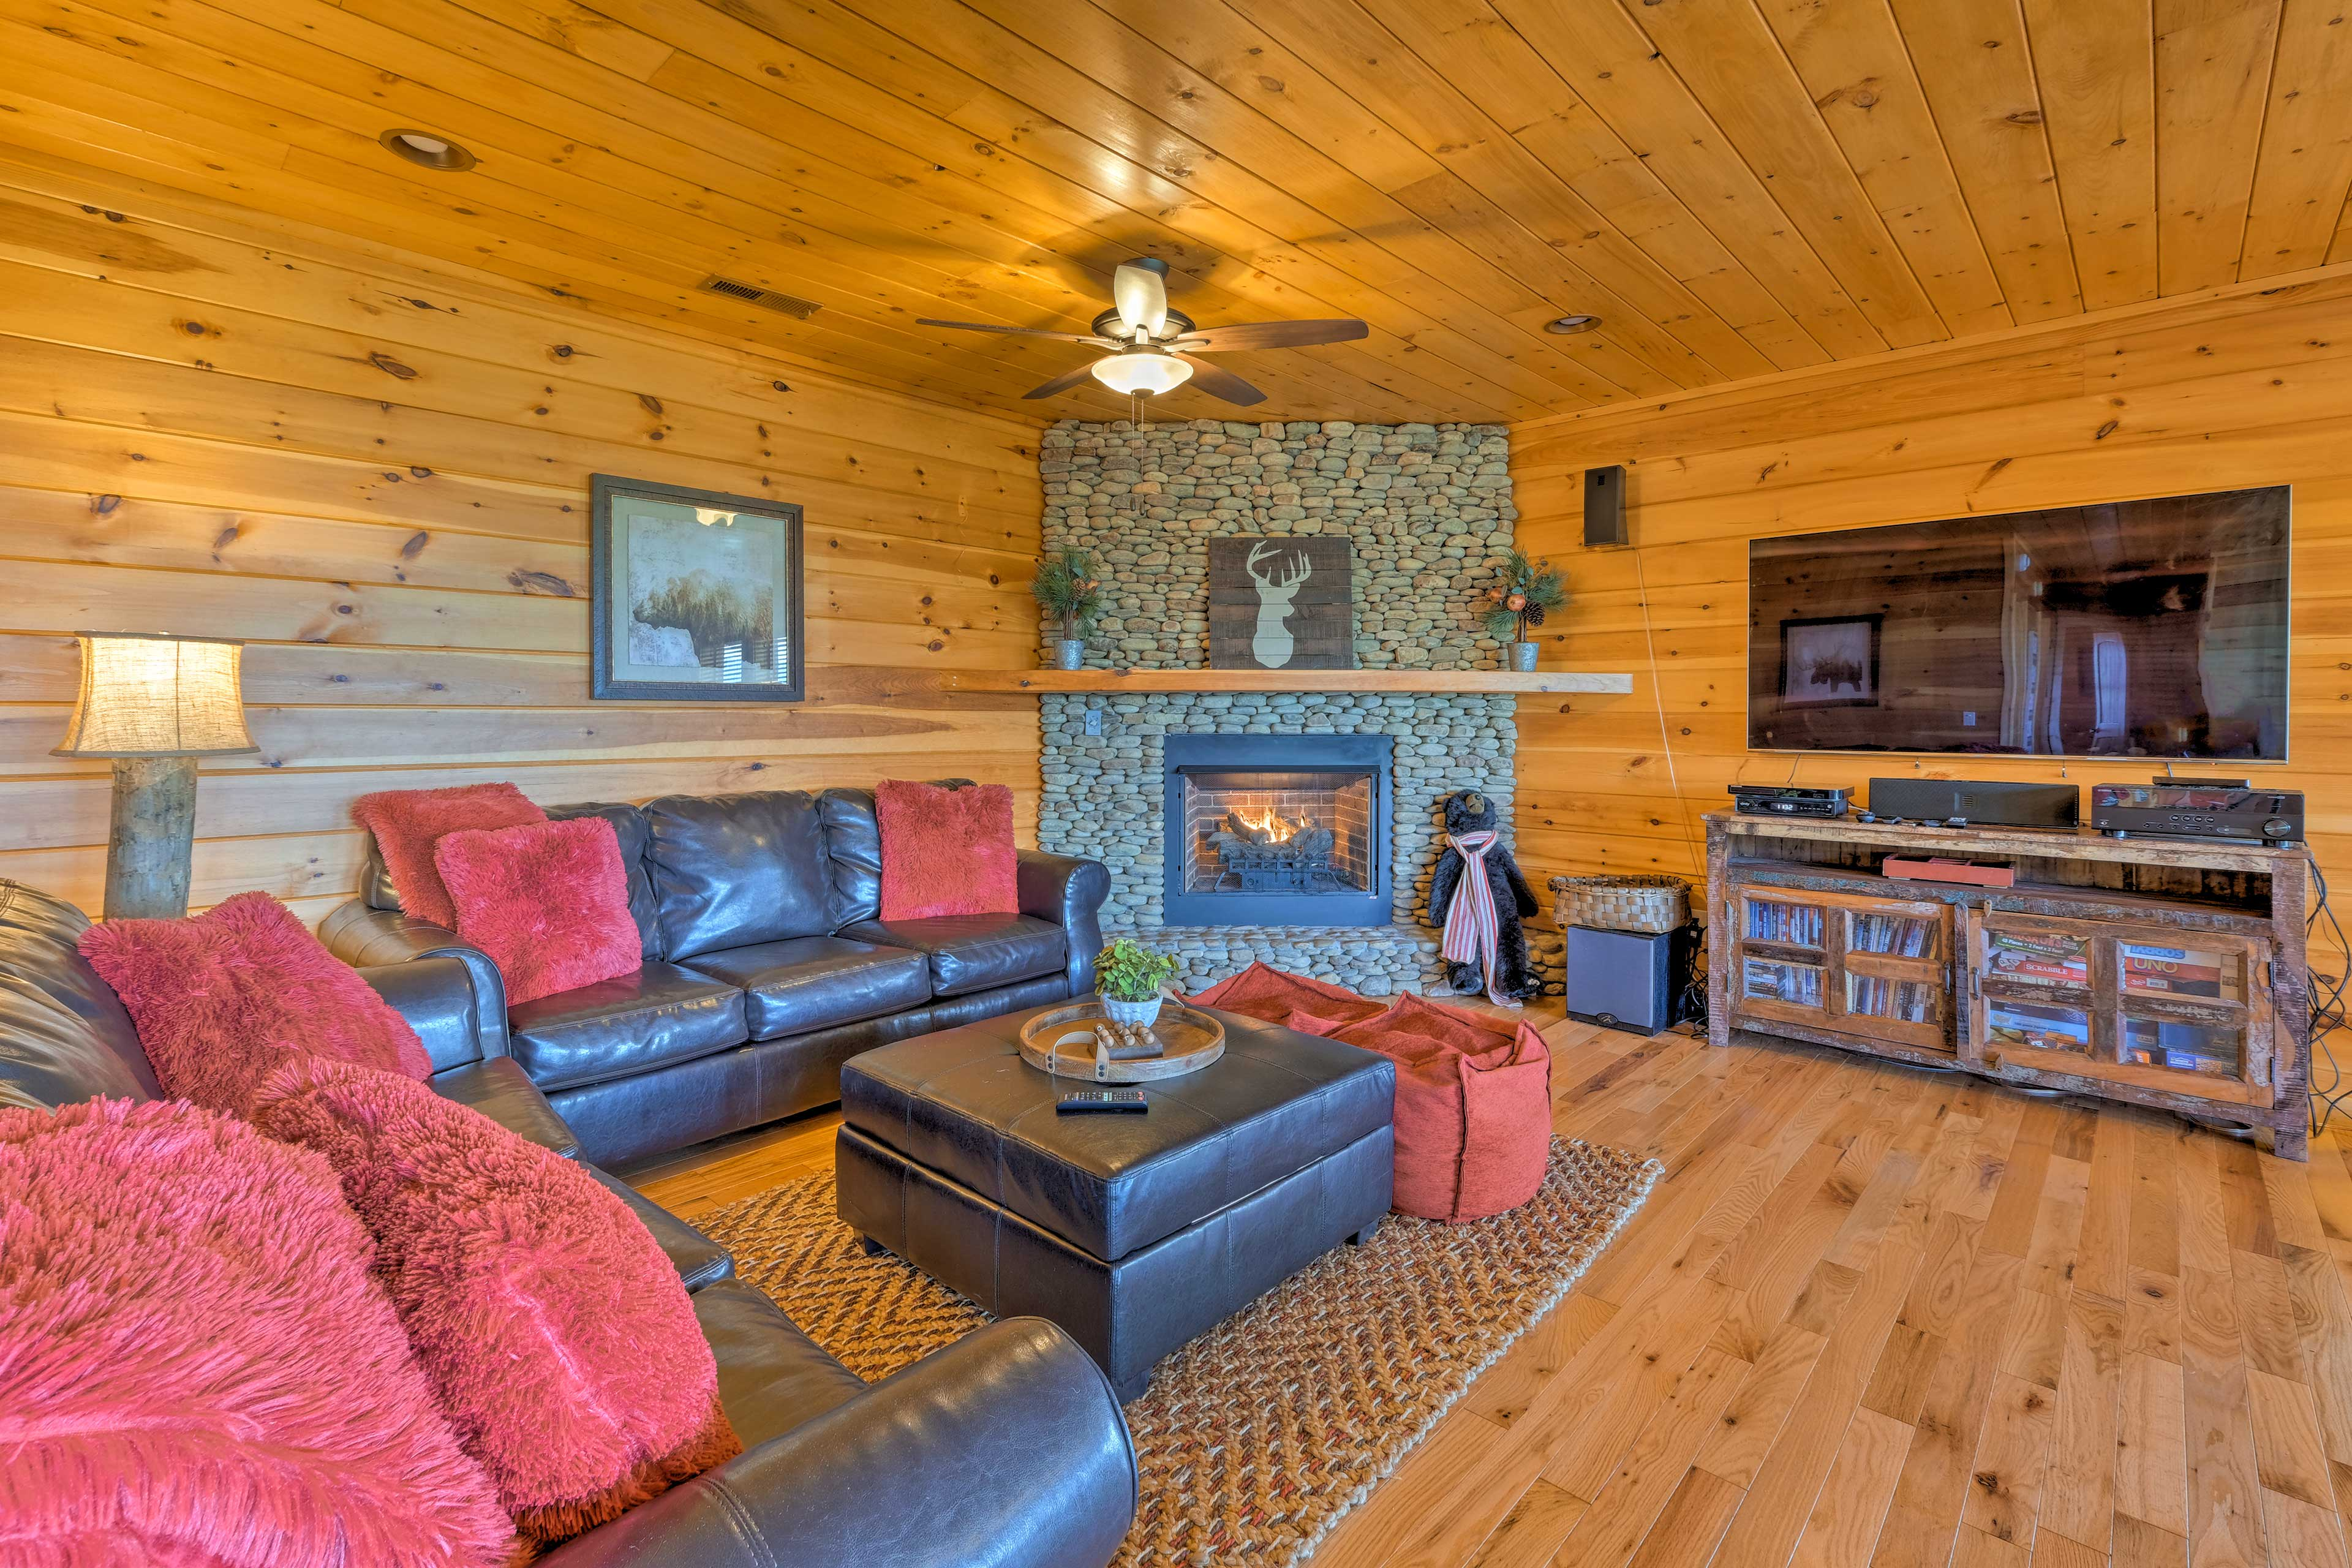 Get nice and toasty by the gas fireplace.